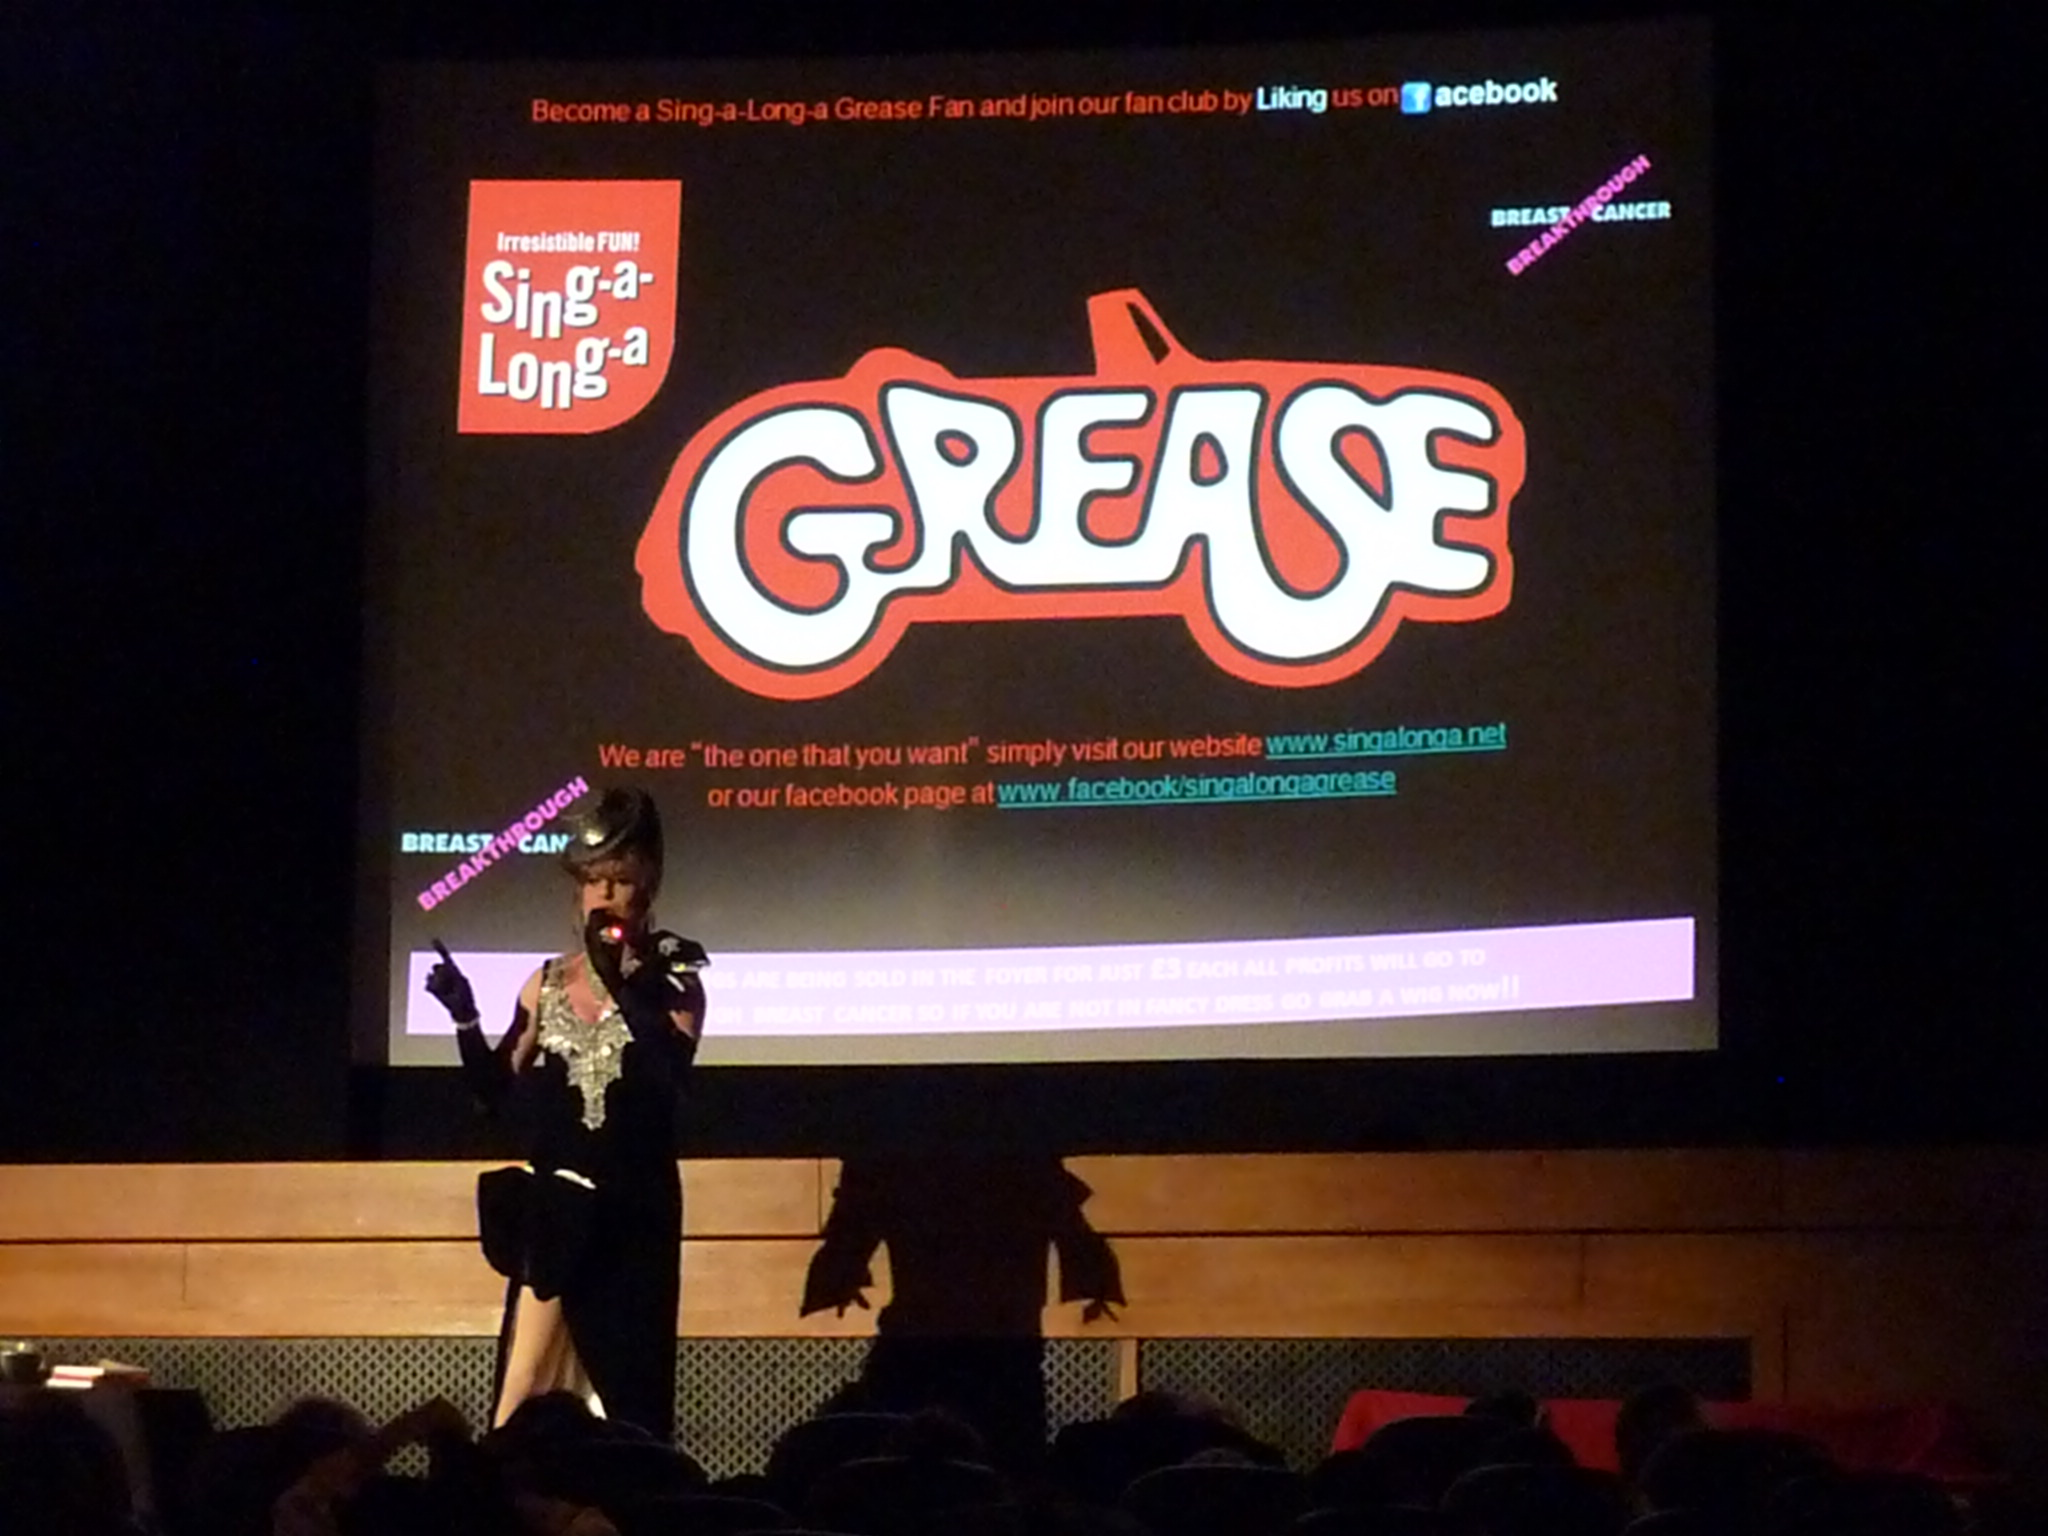 Sing-a-Long-a Grease